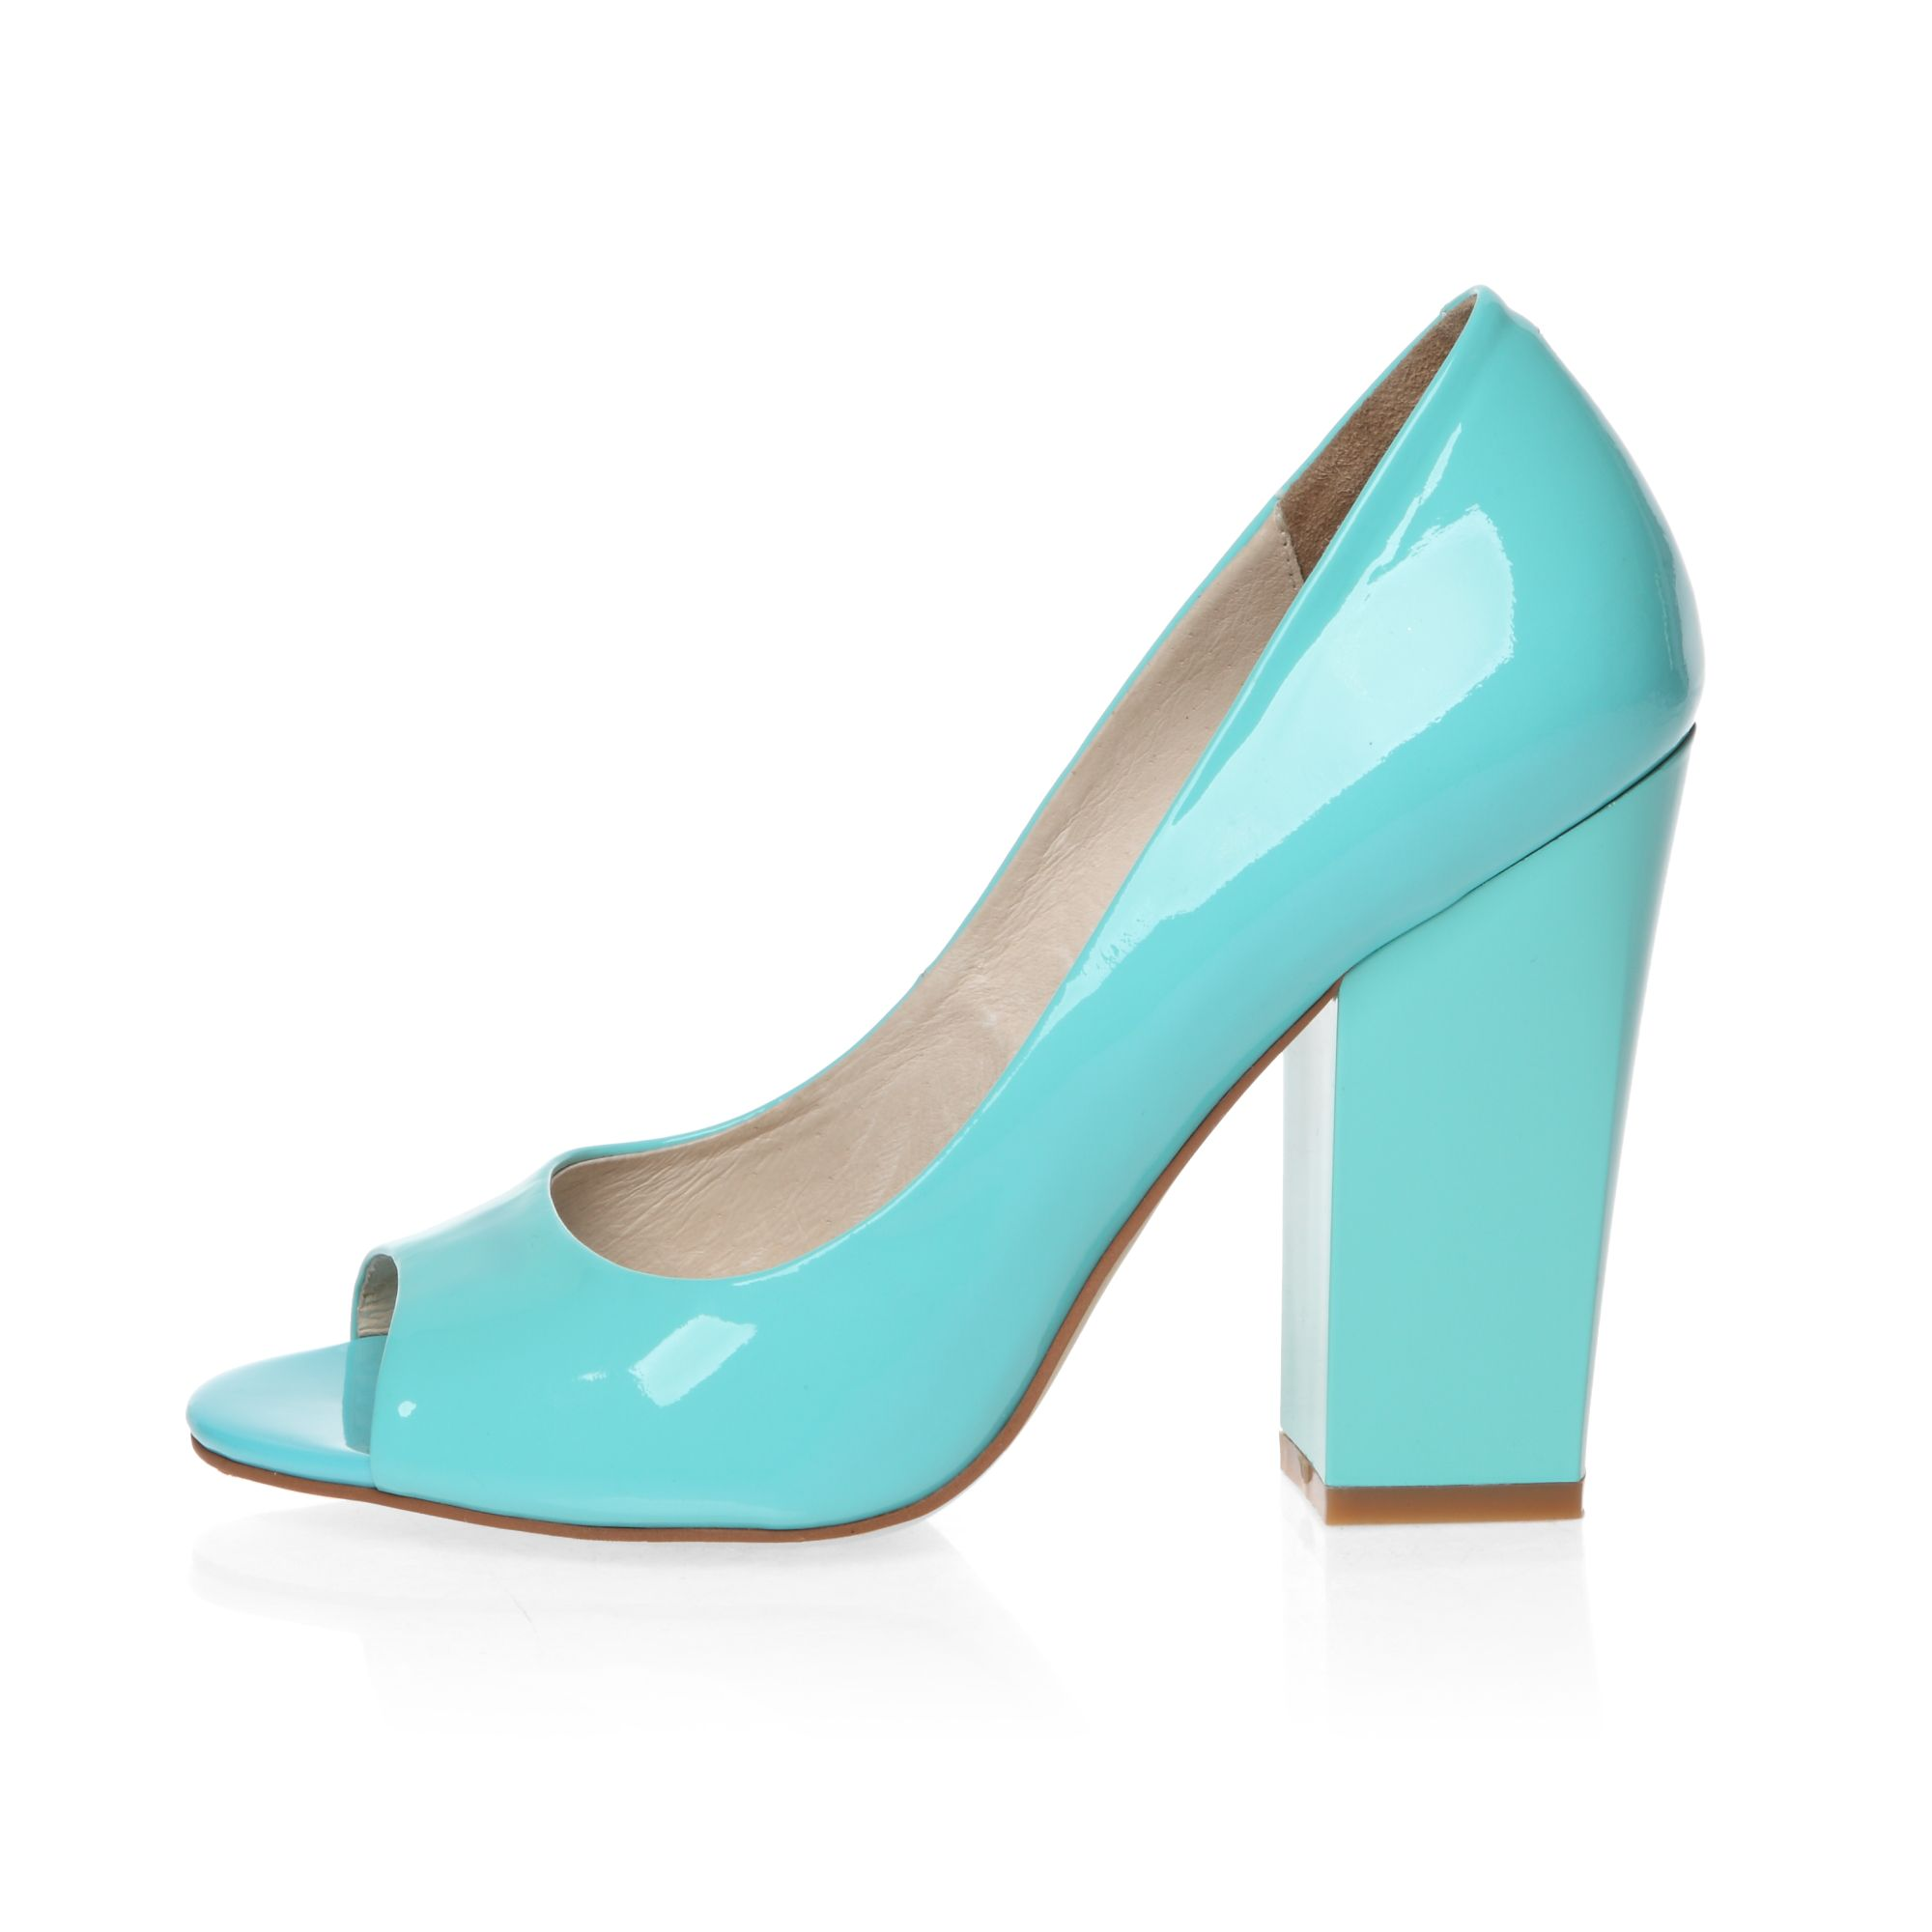 Peep toe heeled court shoes